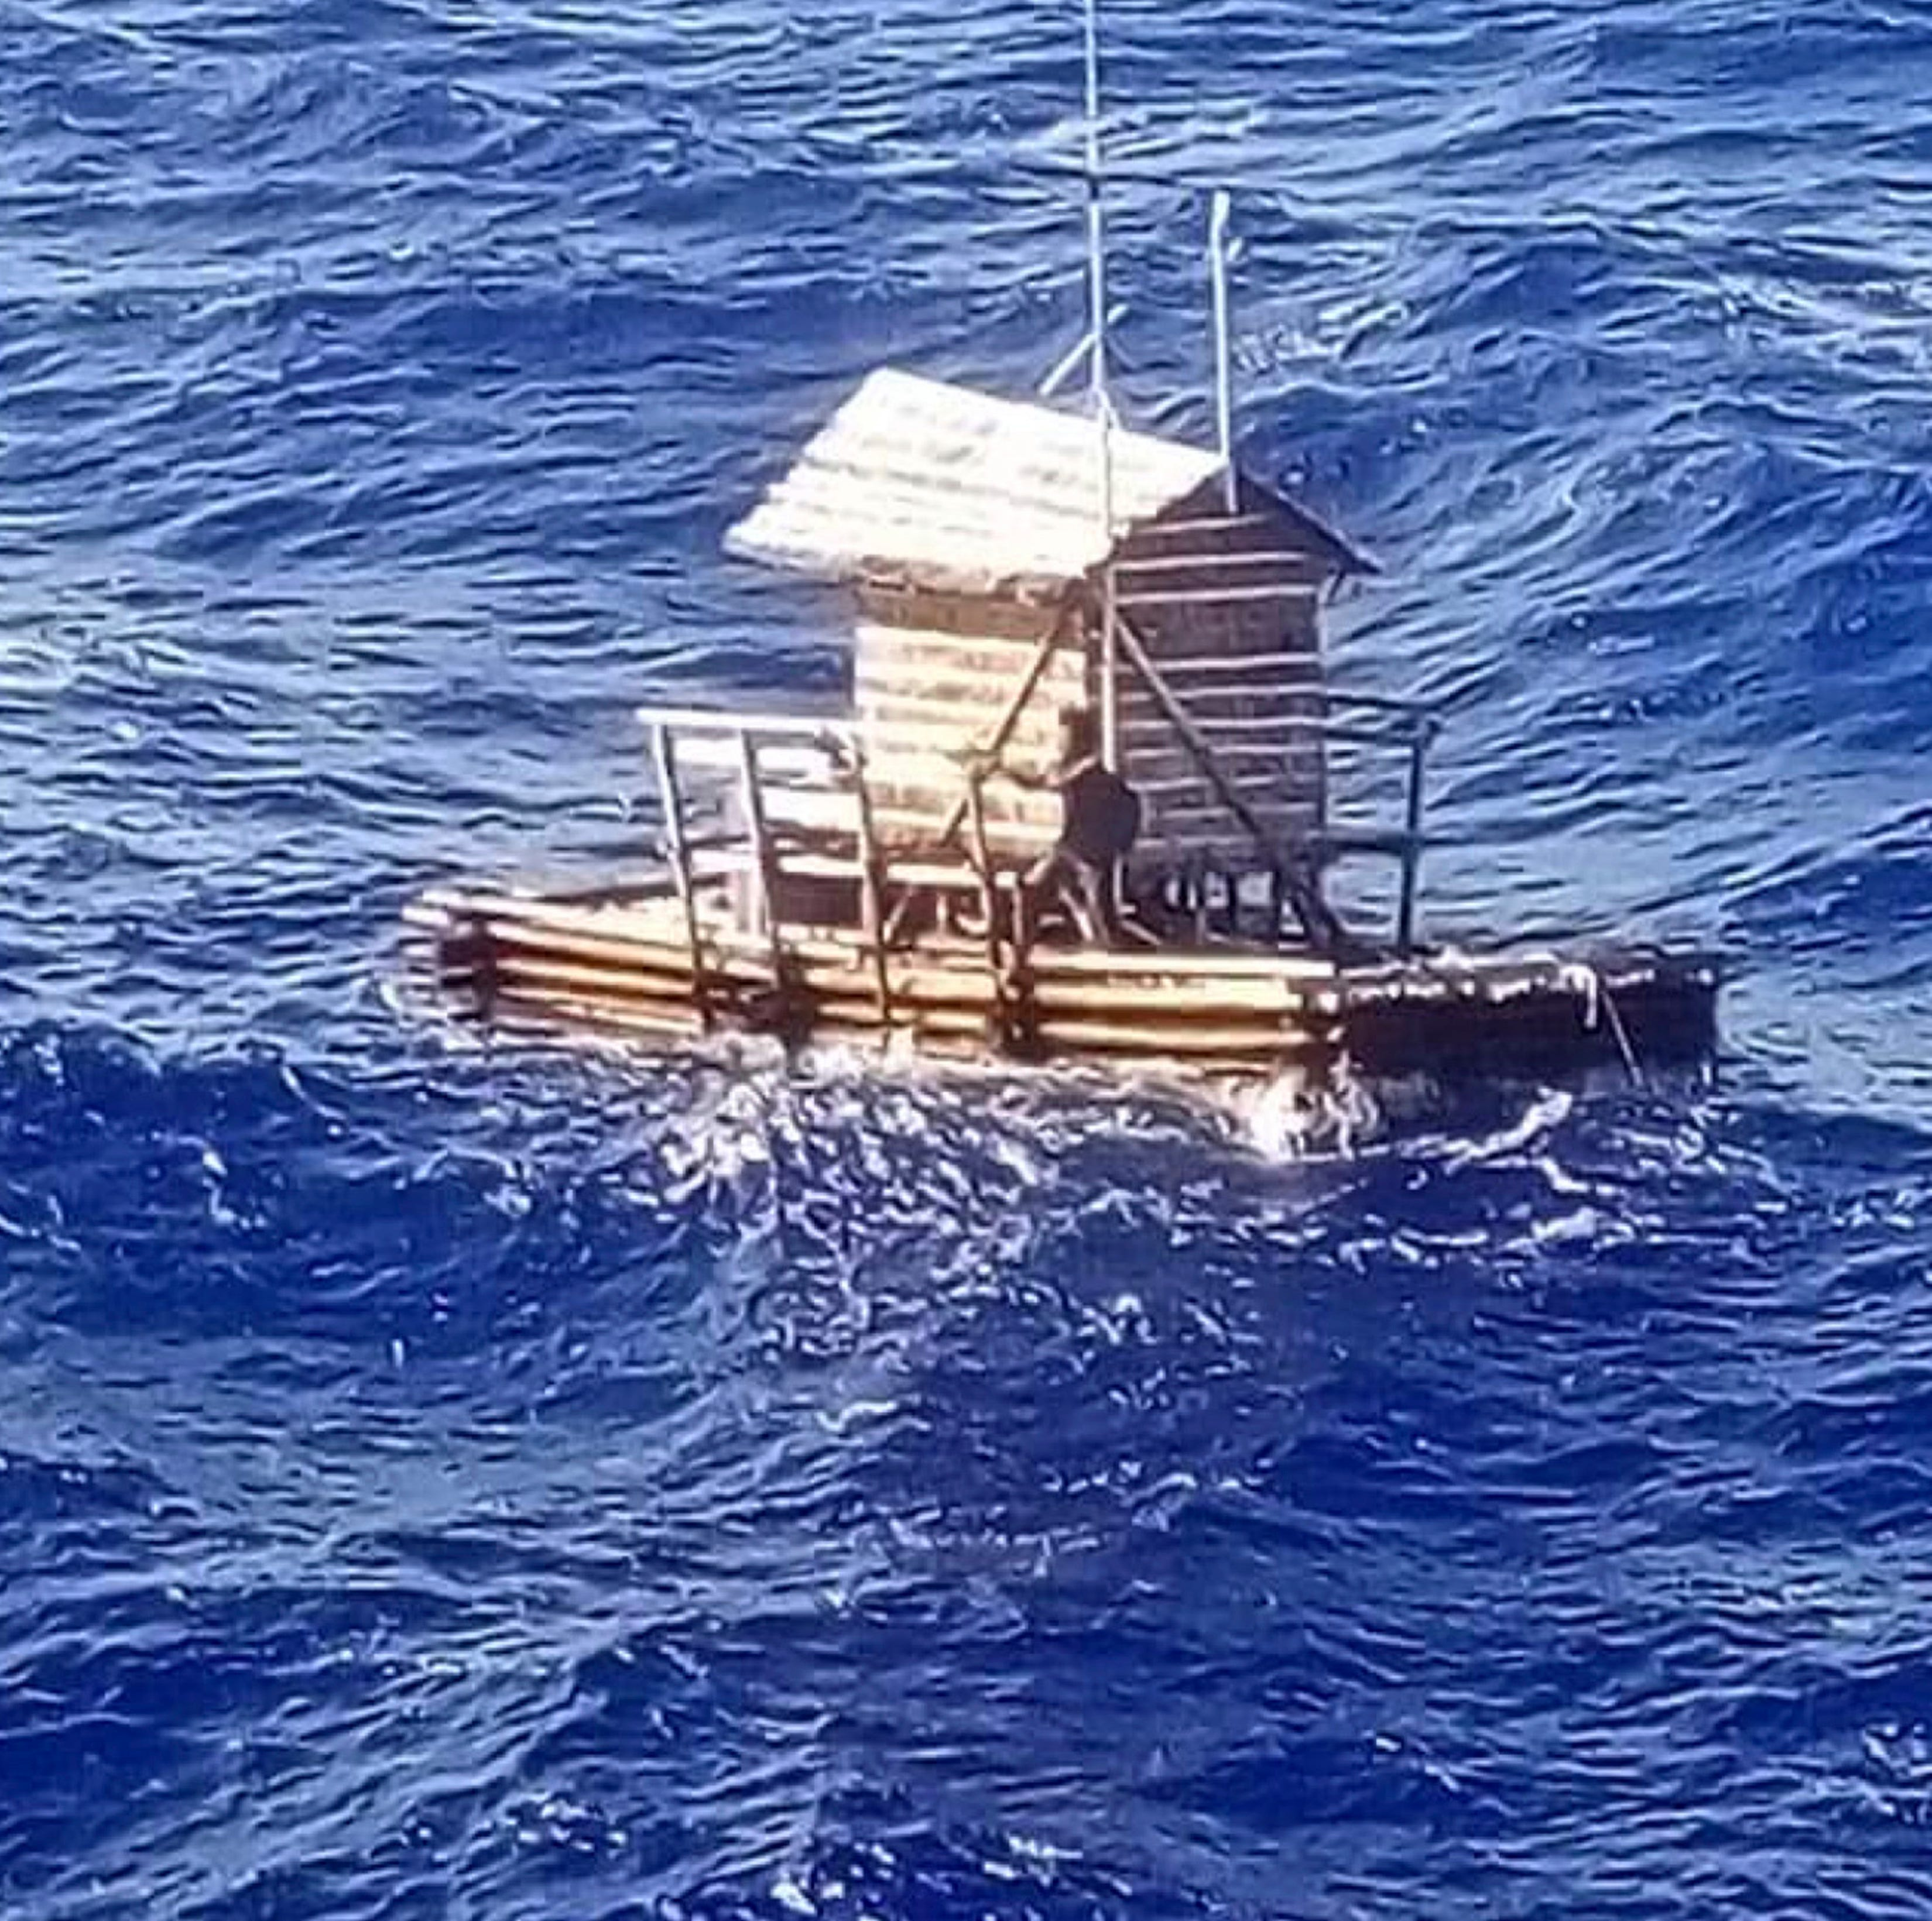 Teenager survives 49 days adrift at sea in Indonesia